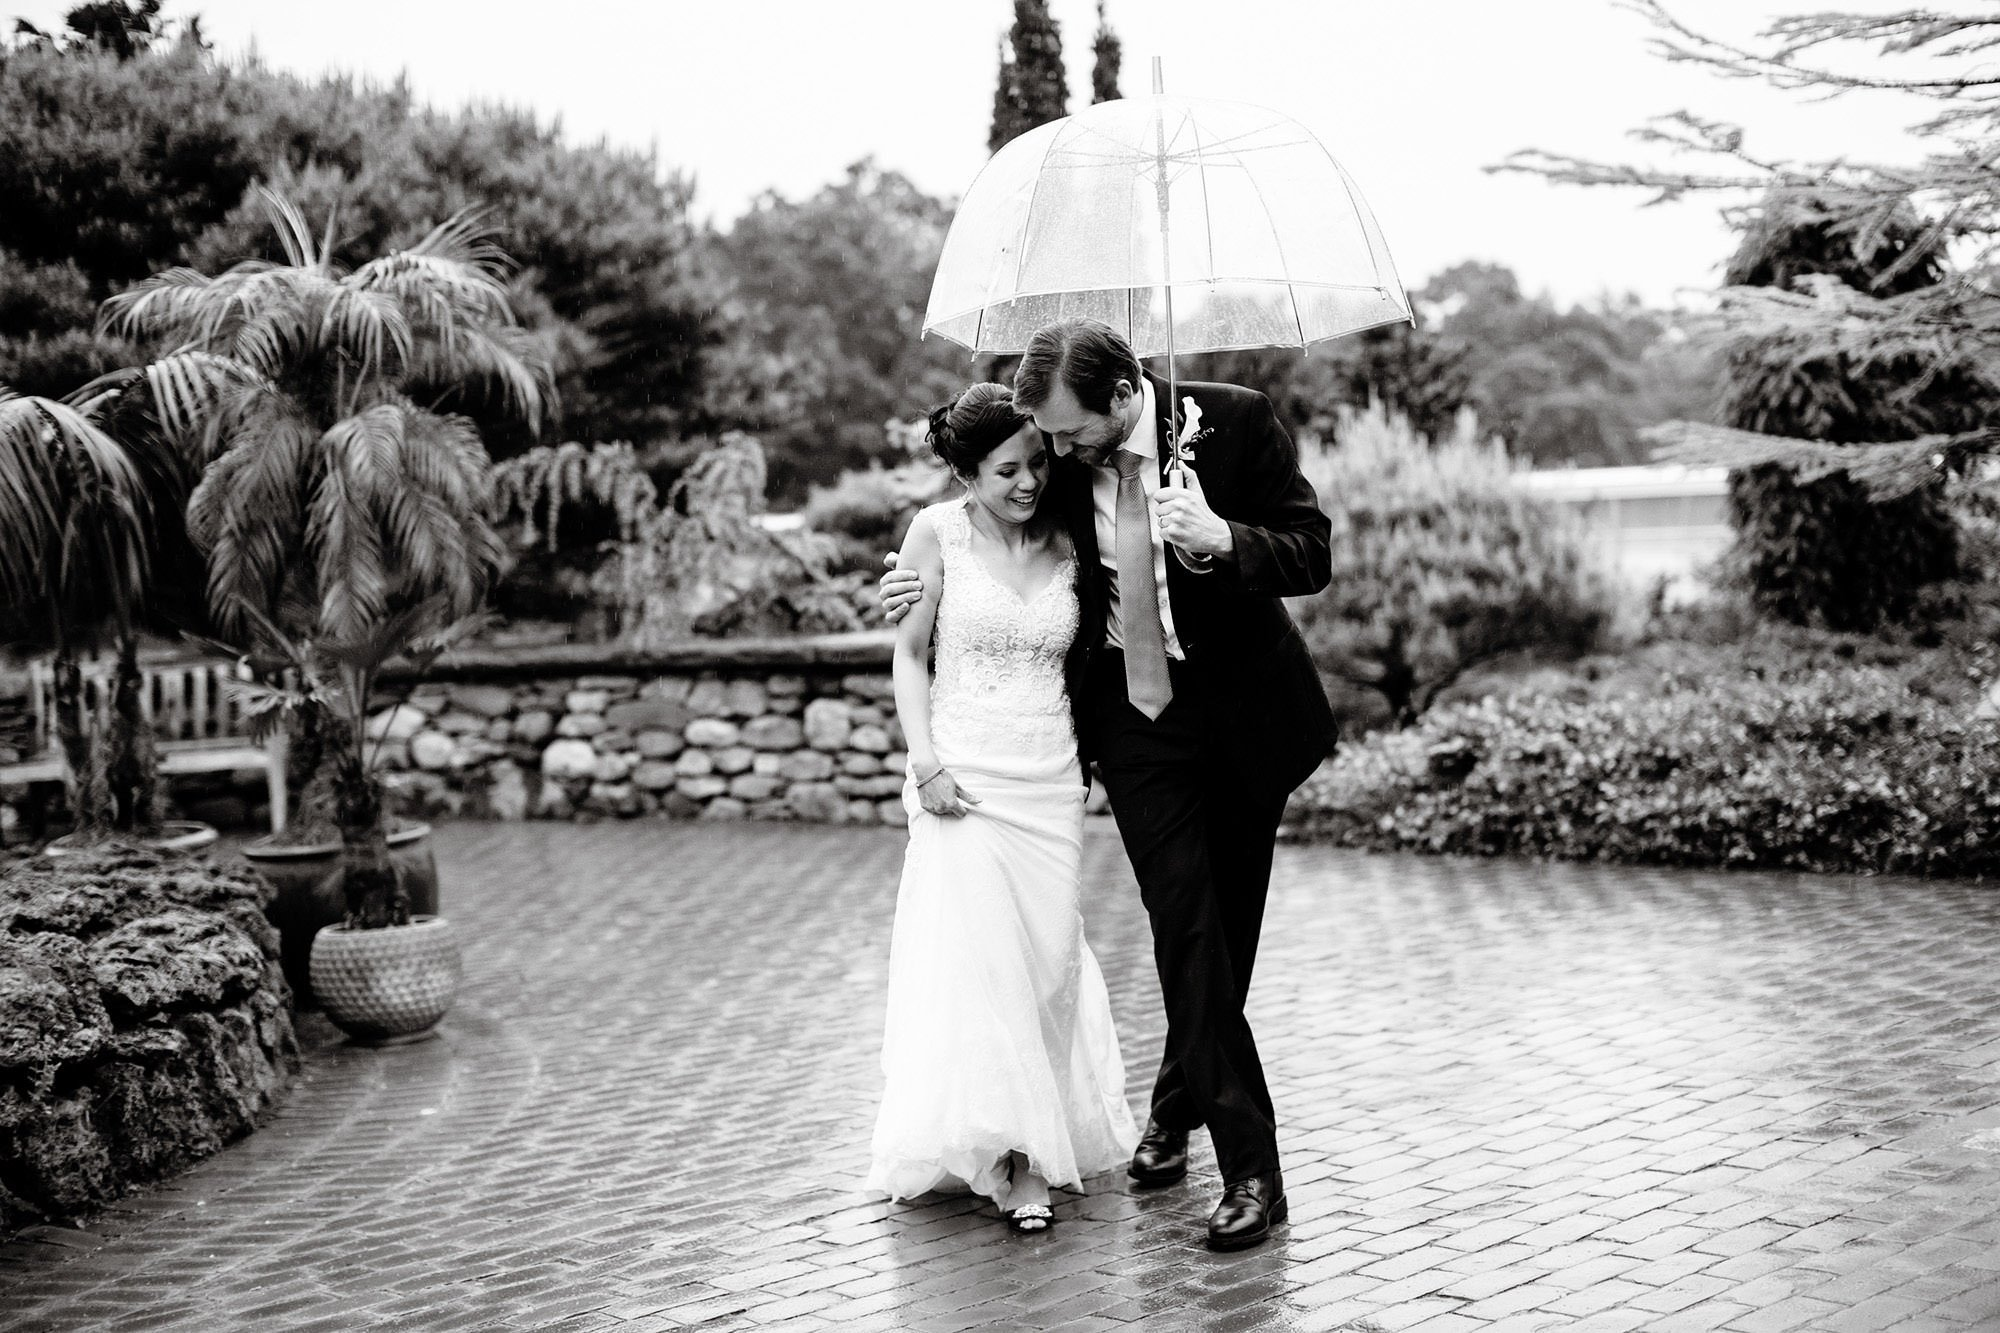 The couple walk in the rain during their Tower Hill Botanic Garden Wedding.